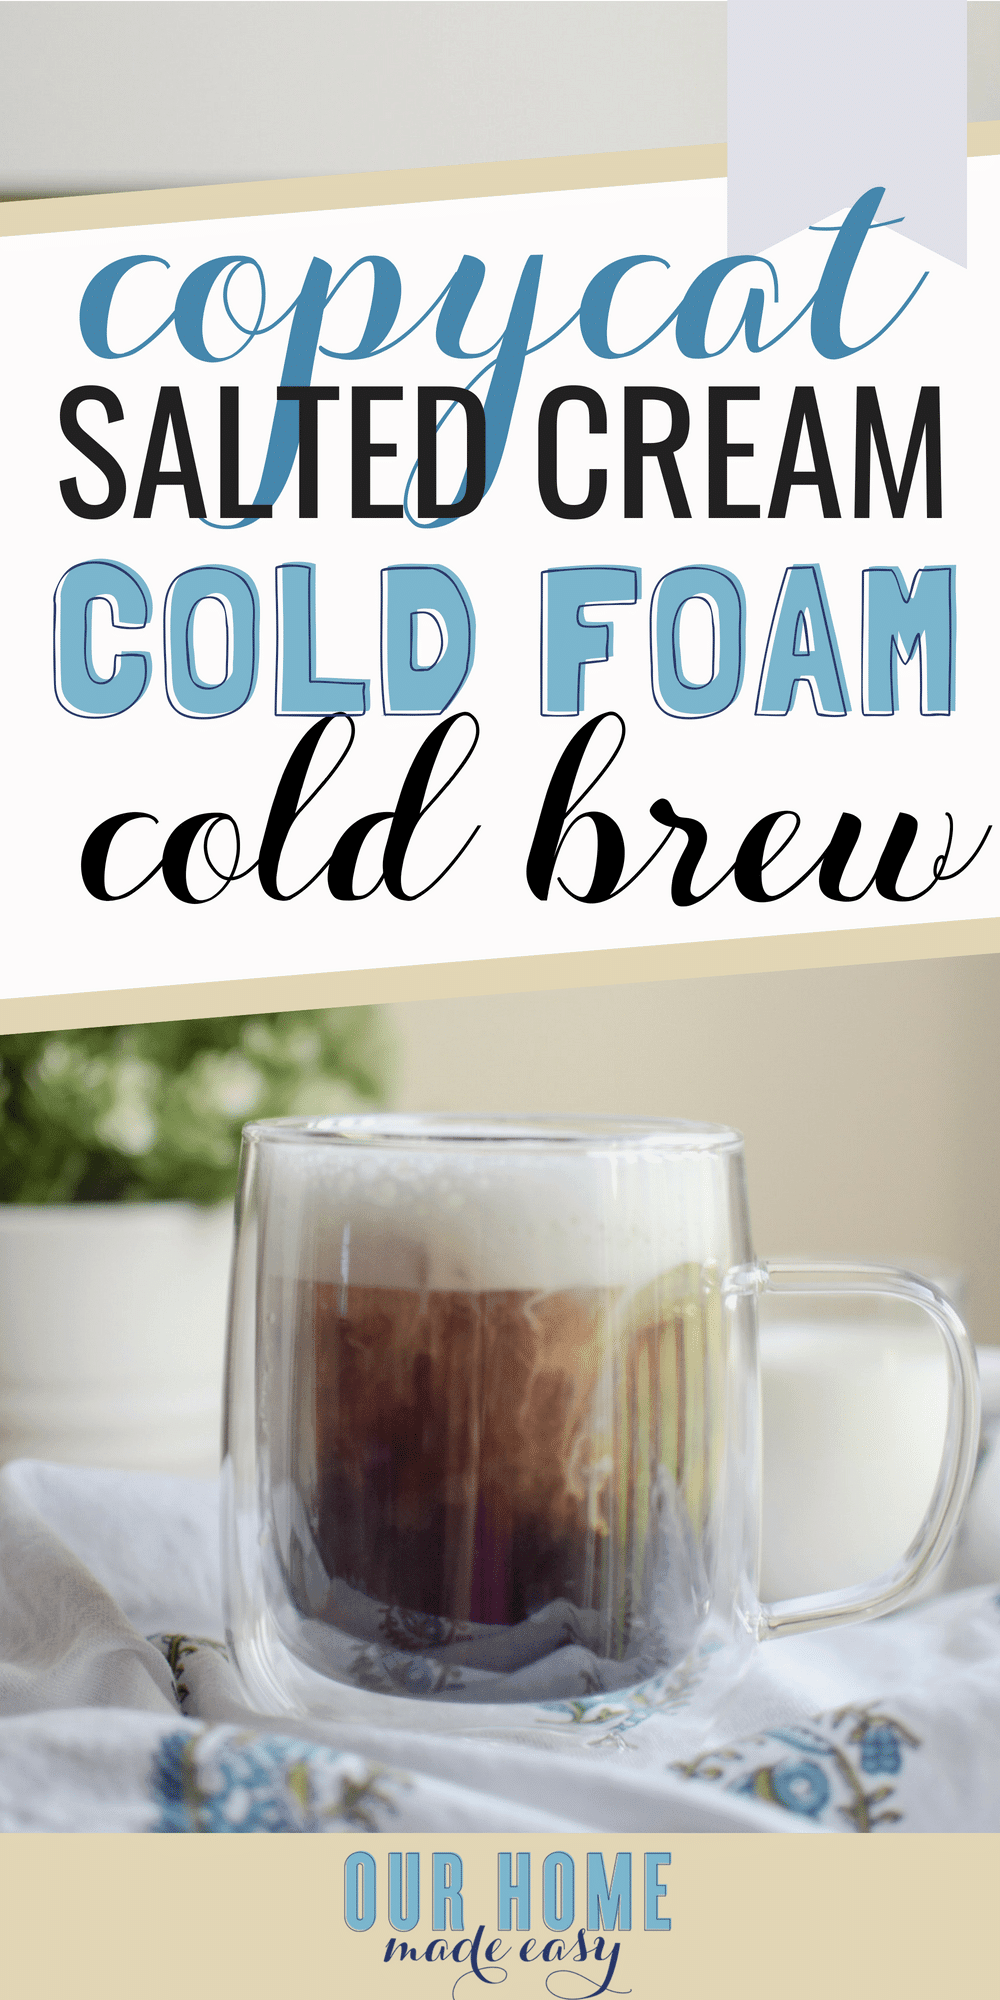 Love the new Salted Cream Cold Foam Cold Brew? Make it home really easily with this copycat recipe! Save money & pour in all the cold foam you want! #starbucks #coffee #coldbrew #caffeine #recipe